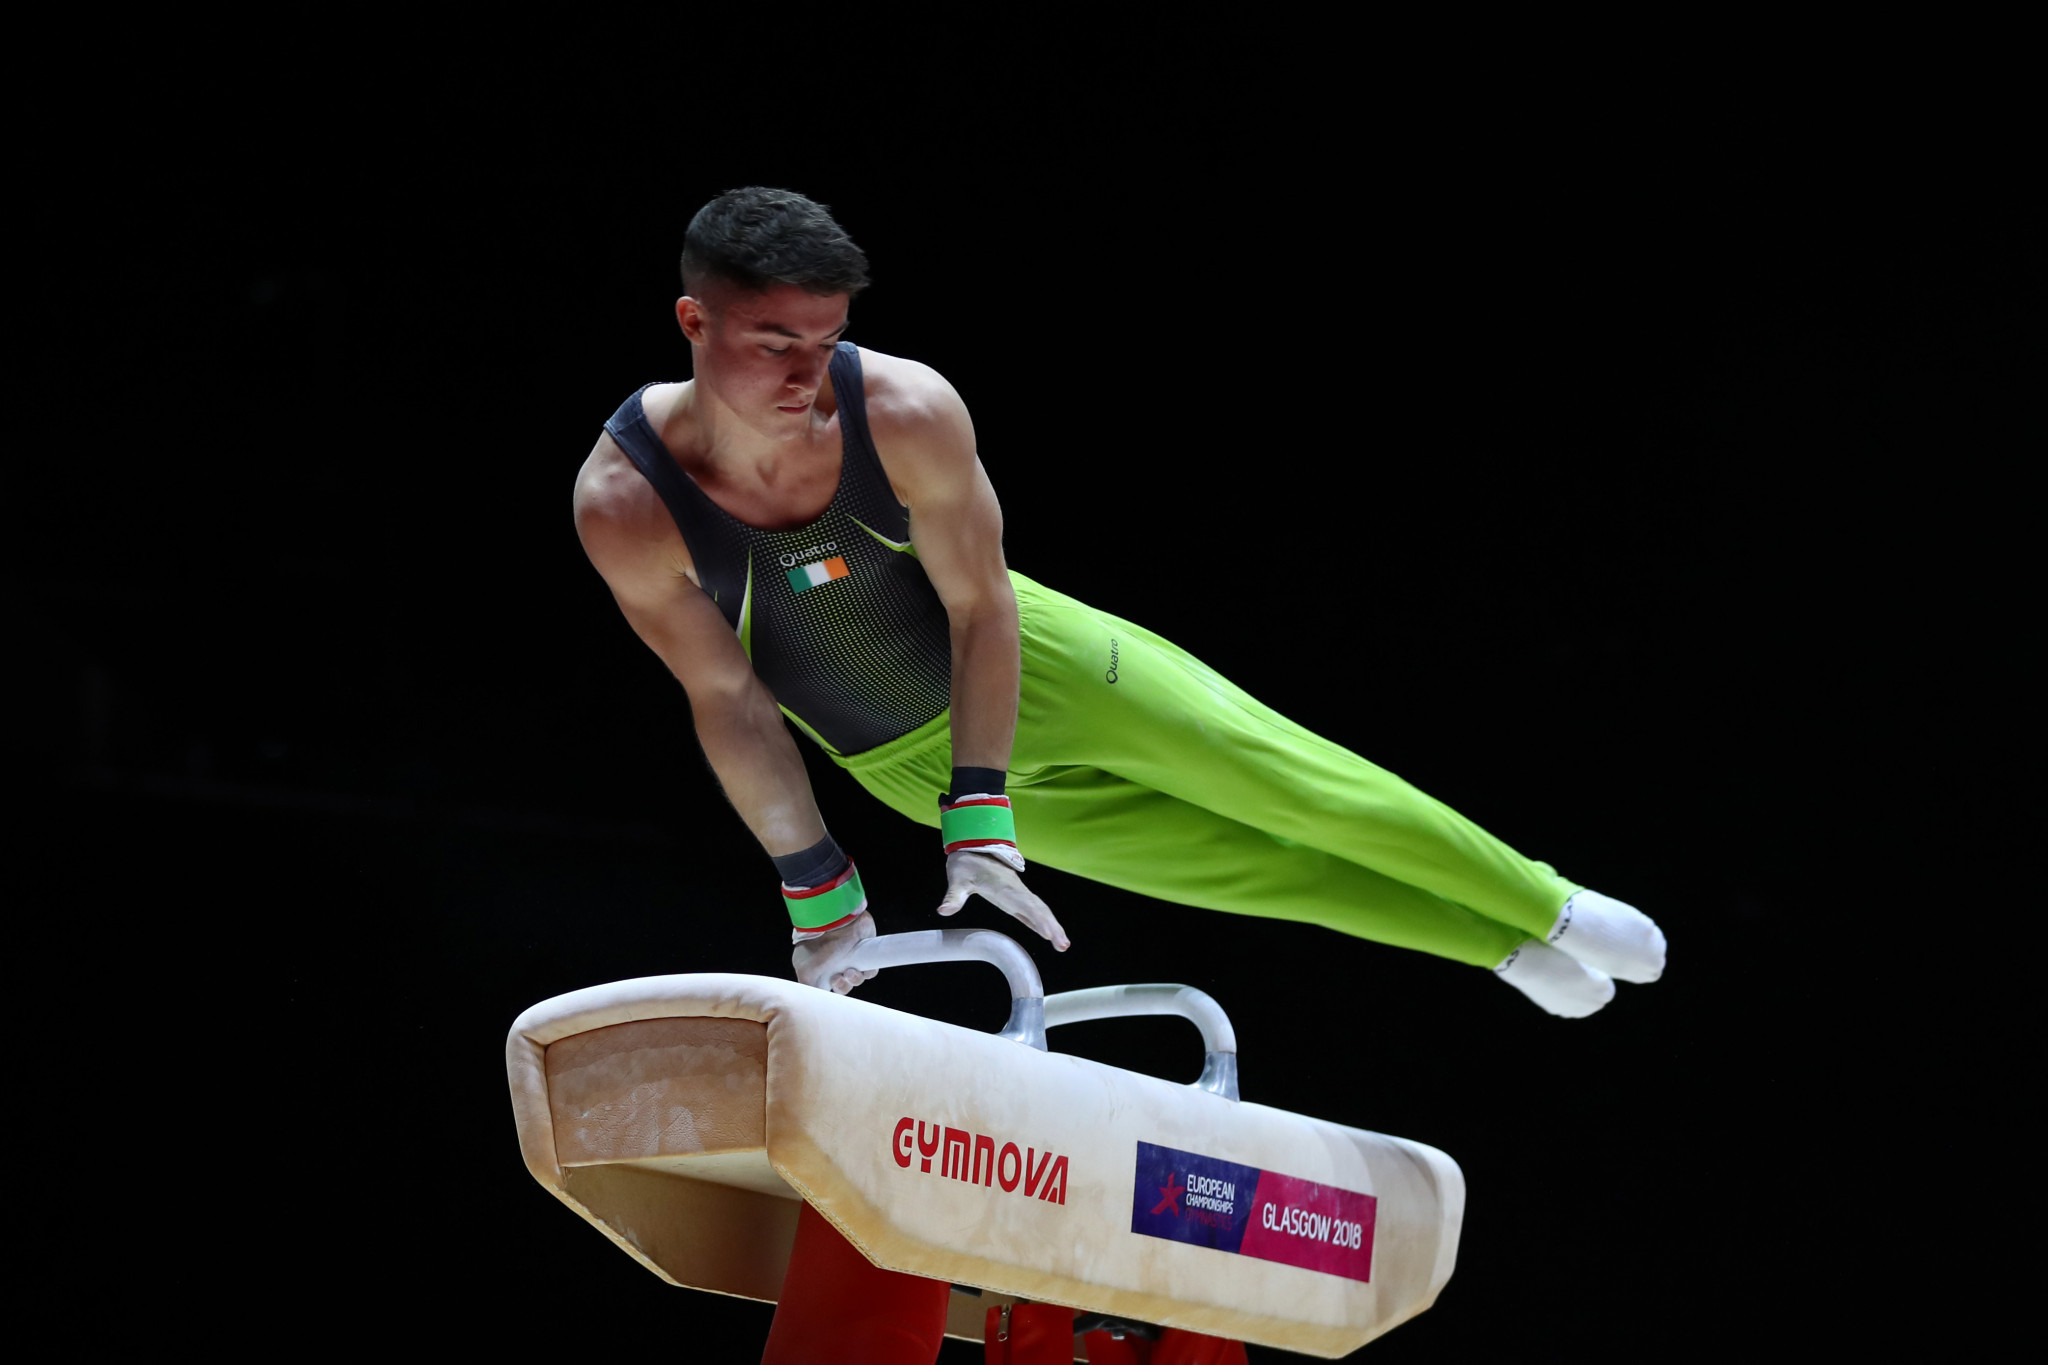 Ireland's Rhys McClenaghan was the strongest performer in men's pommel horse qualification ©Getty Images